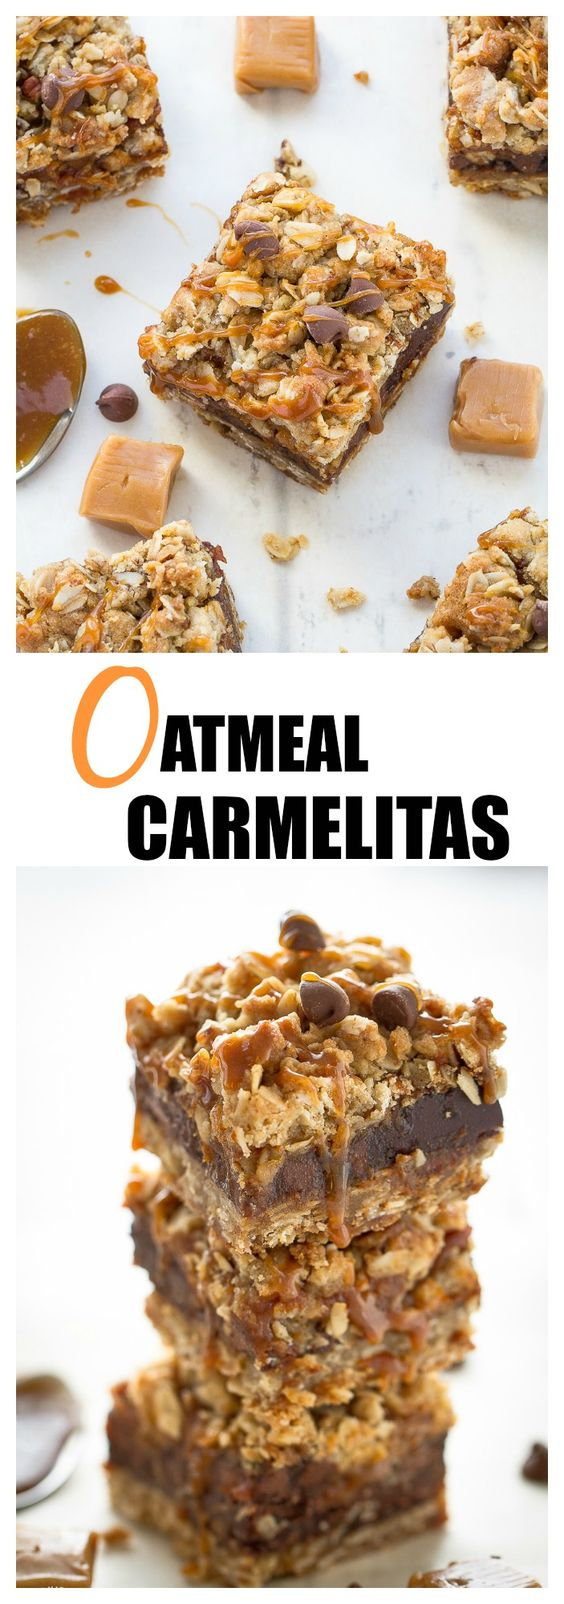 ... oatmeal chocolate filling the sweet mixer caramel bar sweet chocolate